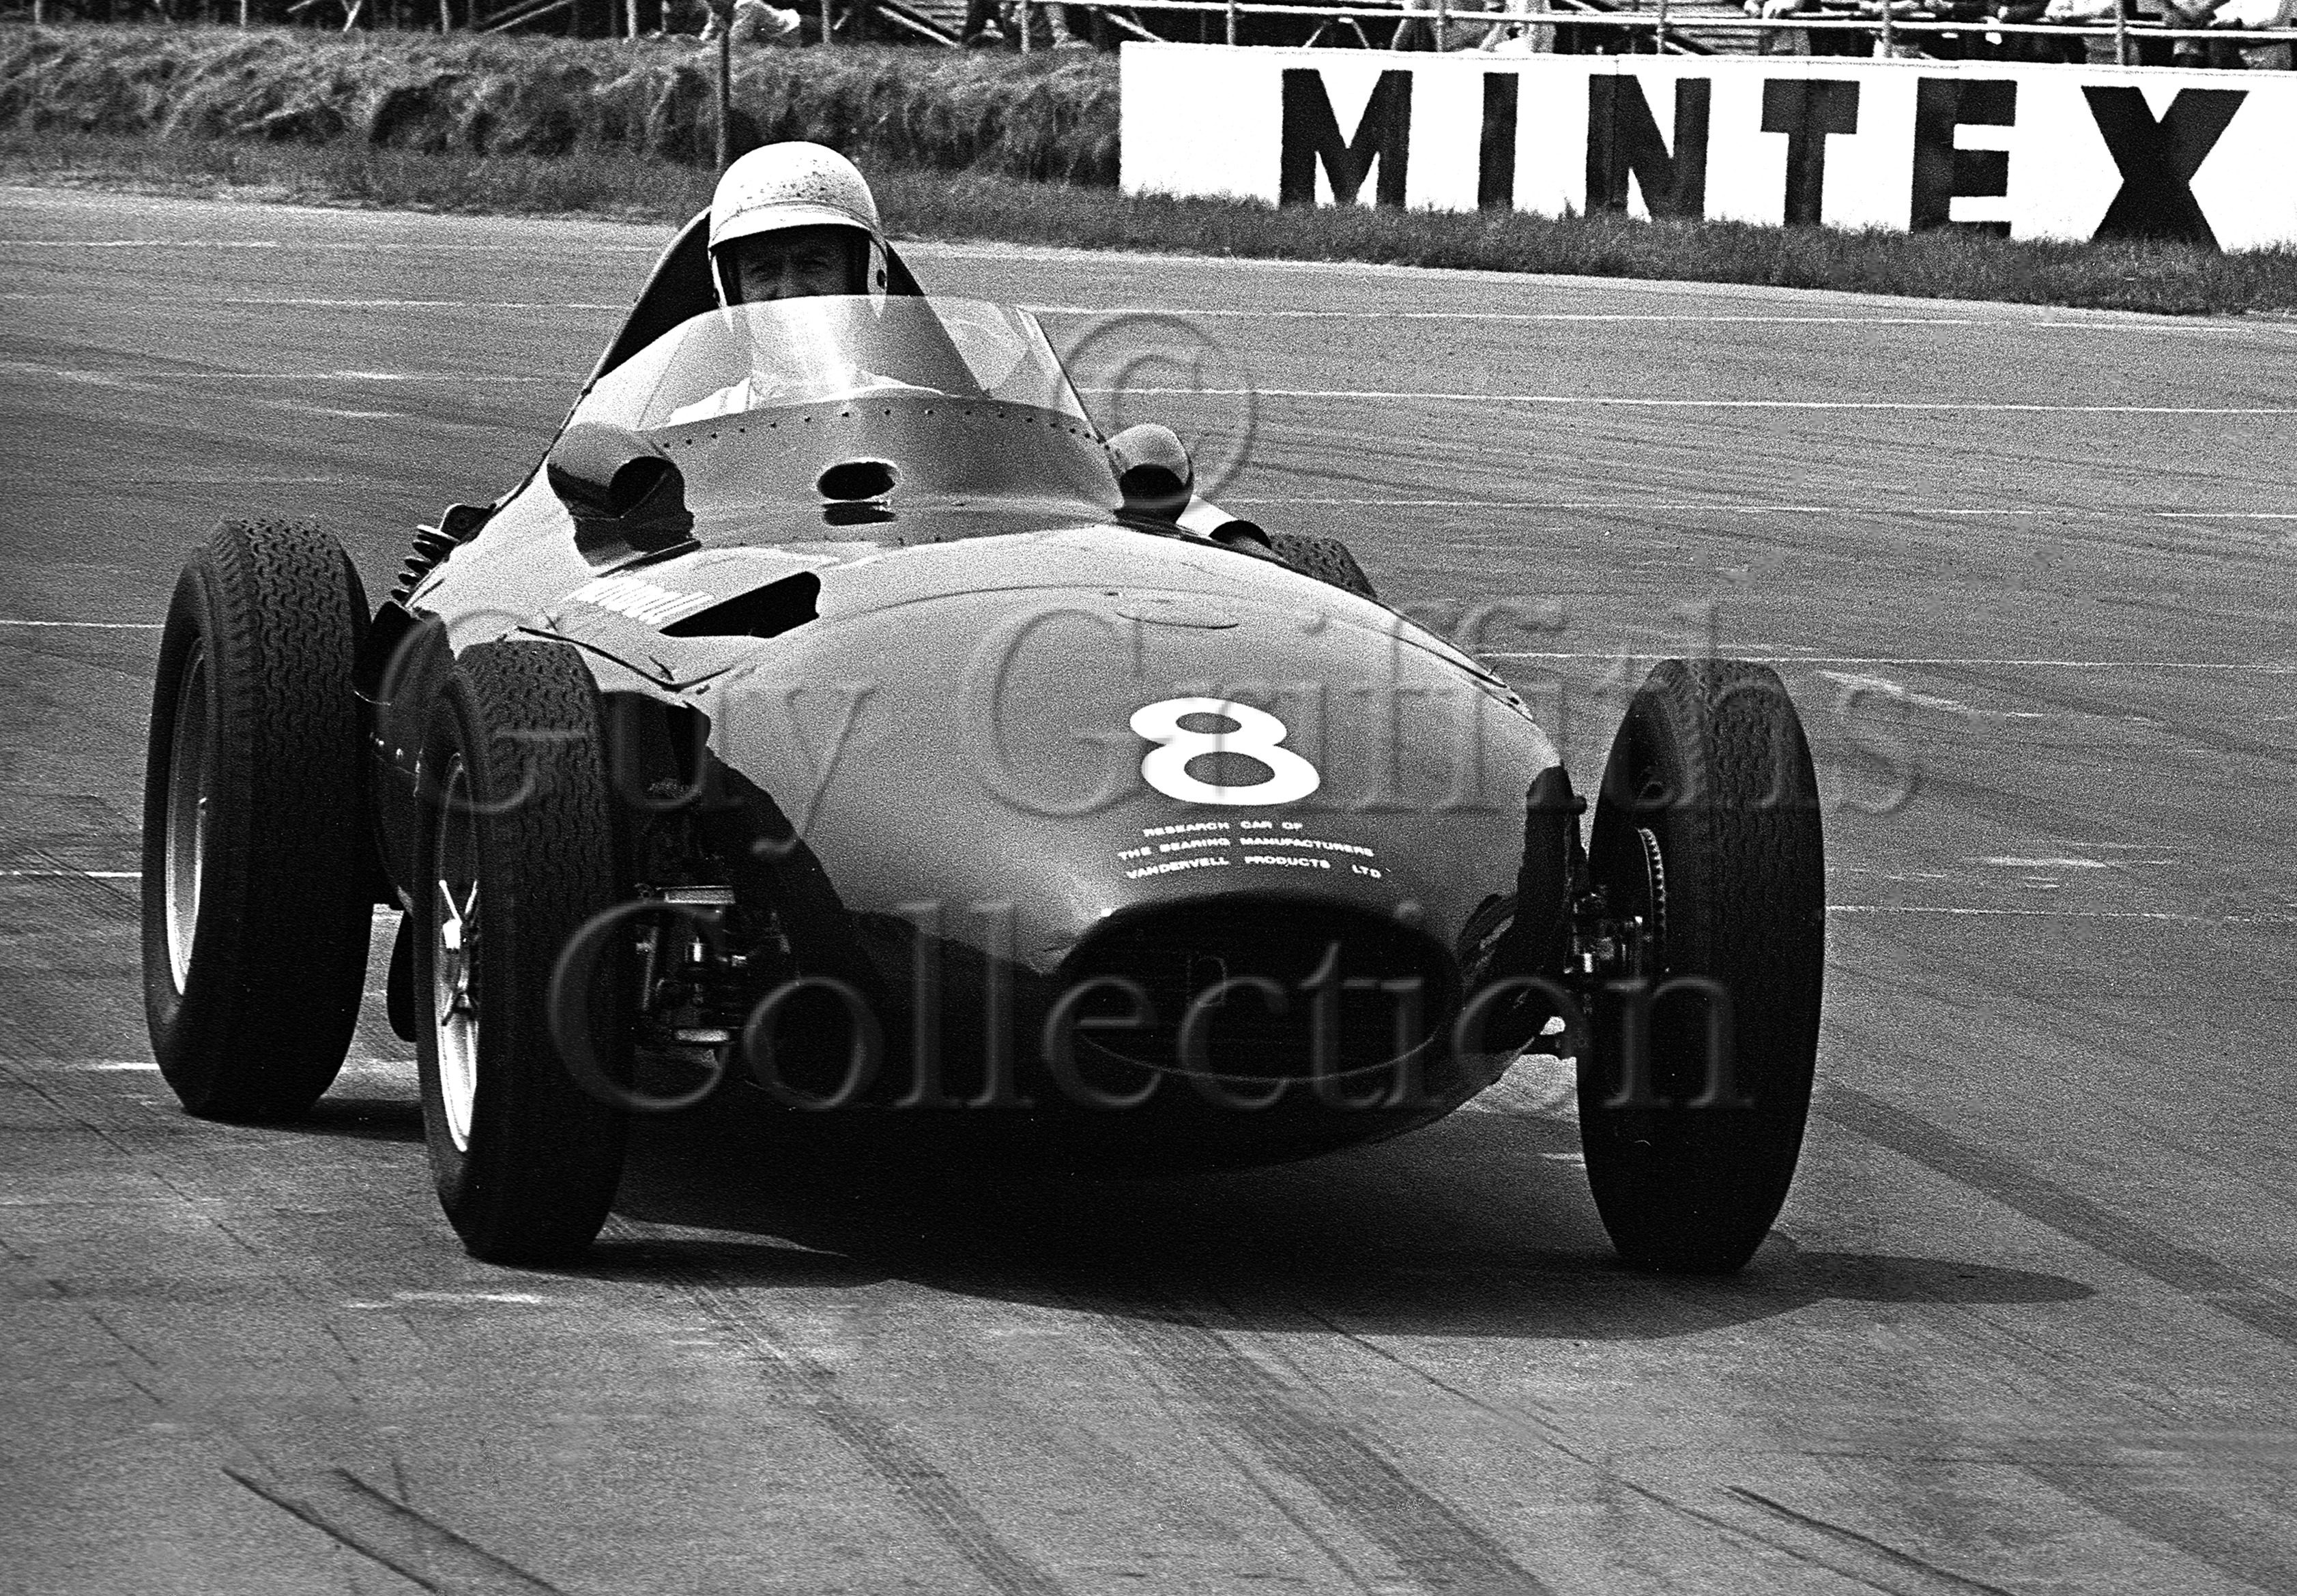 119-664–T-Brooks–Vanwall–Silverstone–15-06-1969.jpg - The Guy Griffiths Collection